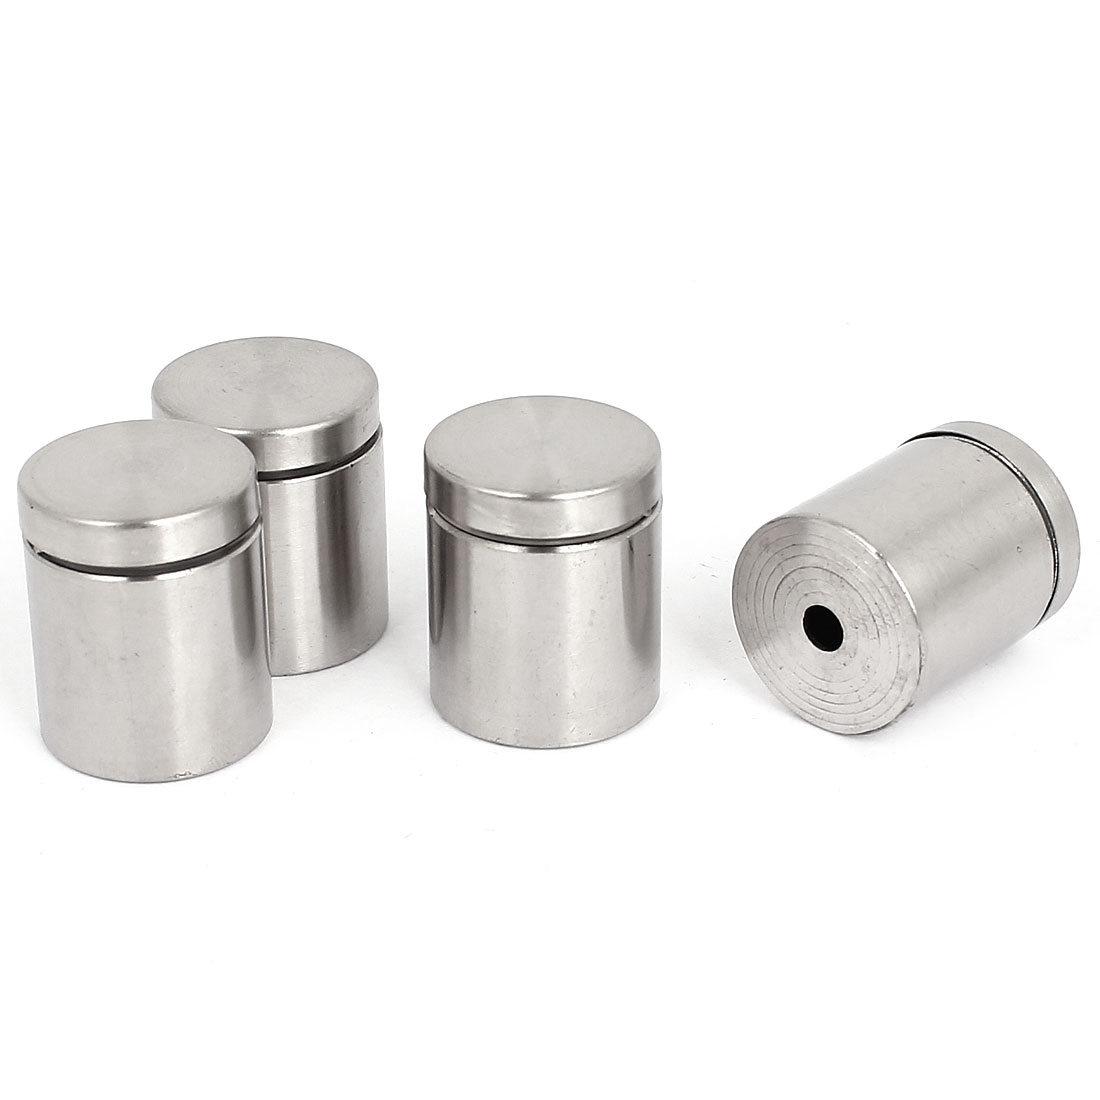 25mm x 30mm Stainless Steel Advertising Nails Glass Standoff Clamp 4 Pcs